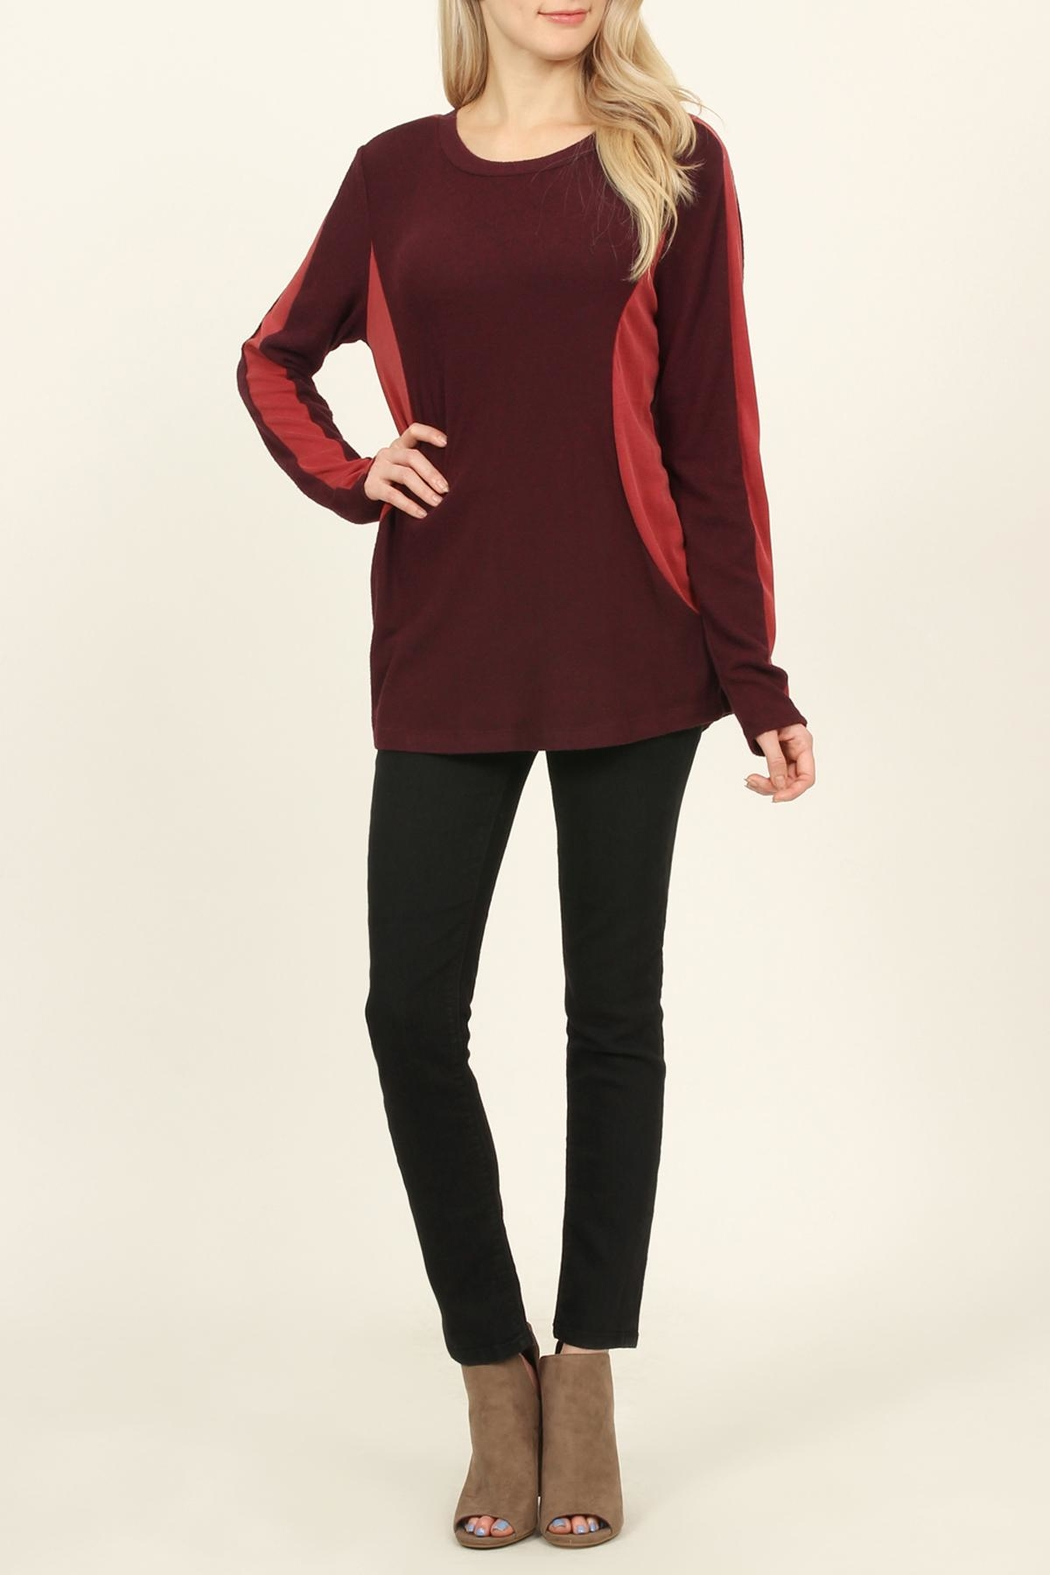 Riah Fashion Two-Tone-Side & Sleeve-Accented-Sweater - Front Cropped Image